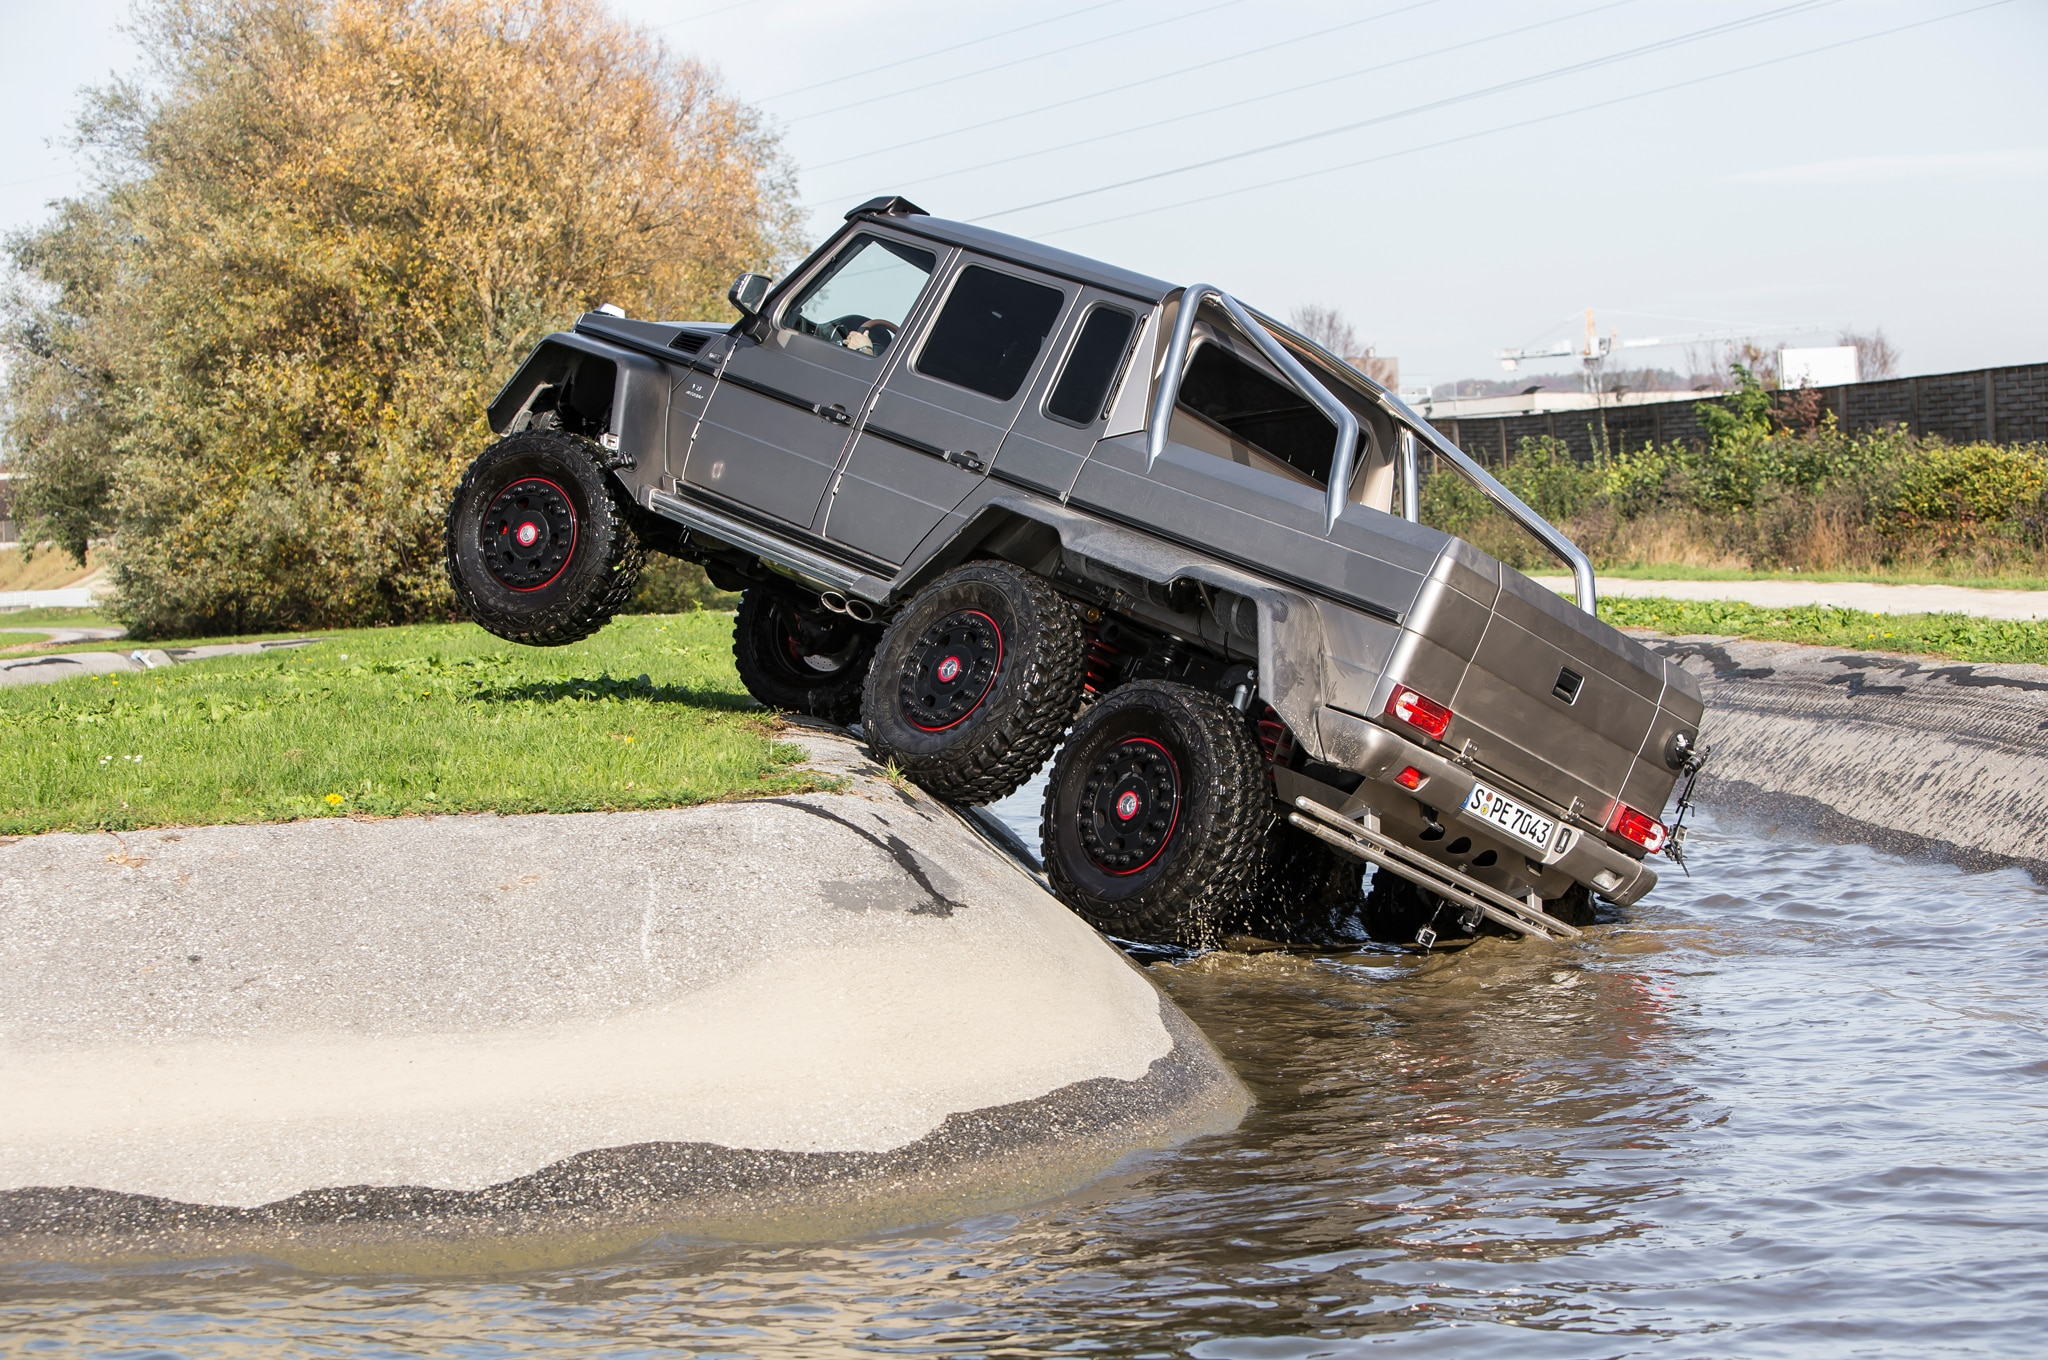 Mercedes G63 Amg 6x6 Battles Normal G63 Amg In Head 2 Head Photo Image Gallery